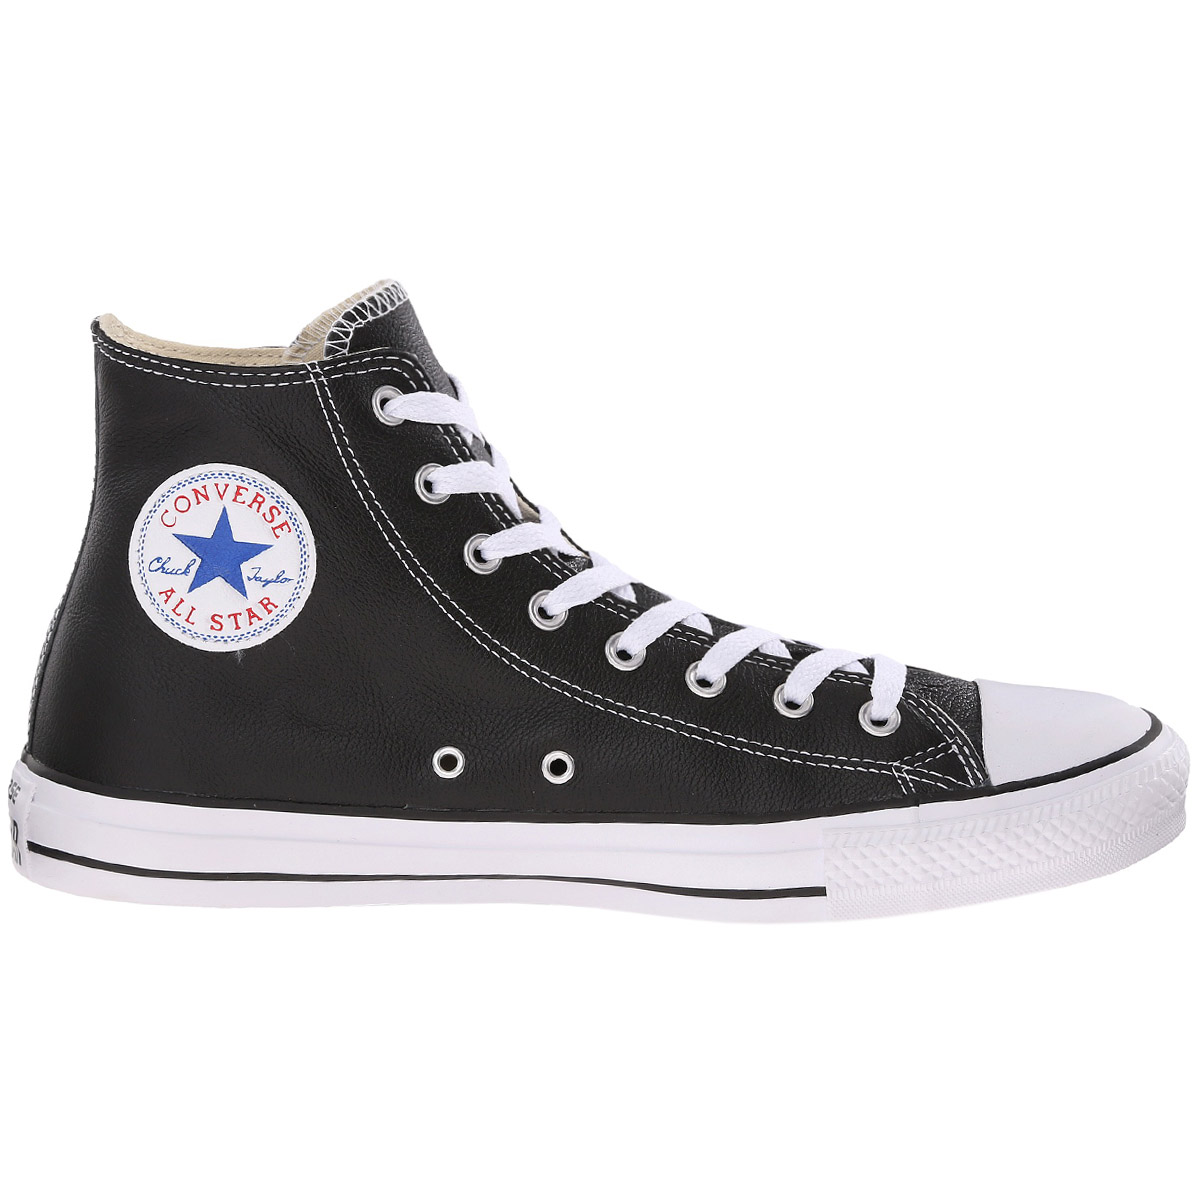 converse chuck taylor all star hi leather schuhe sneaker. Black Bedroom Furniture Sets. Home Design Ideas